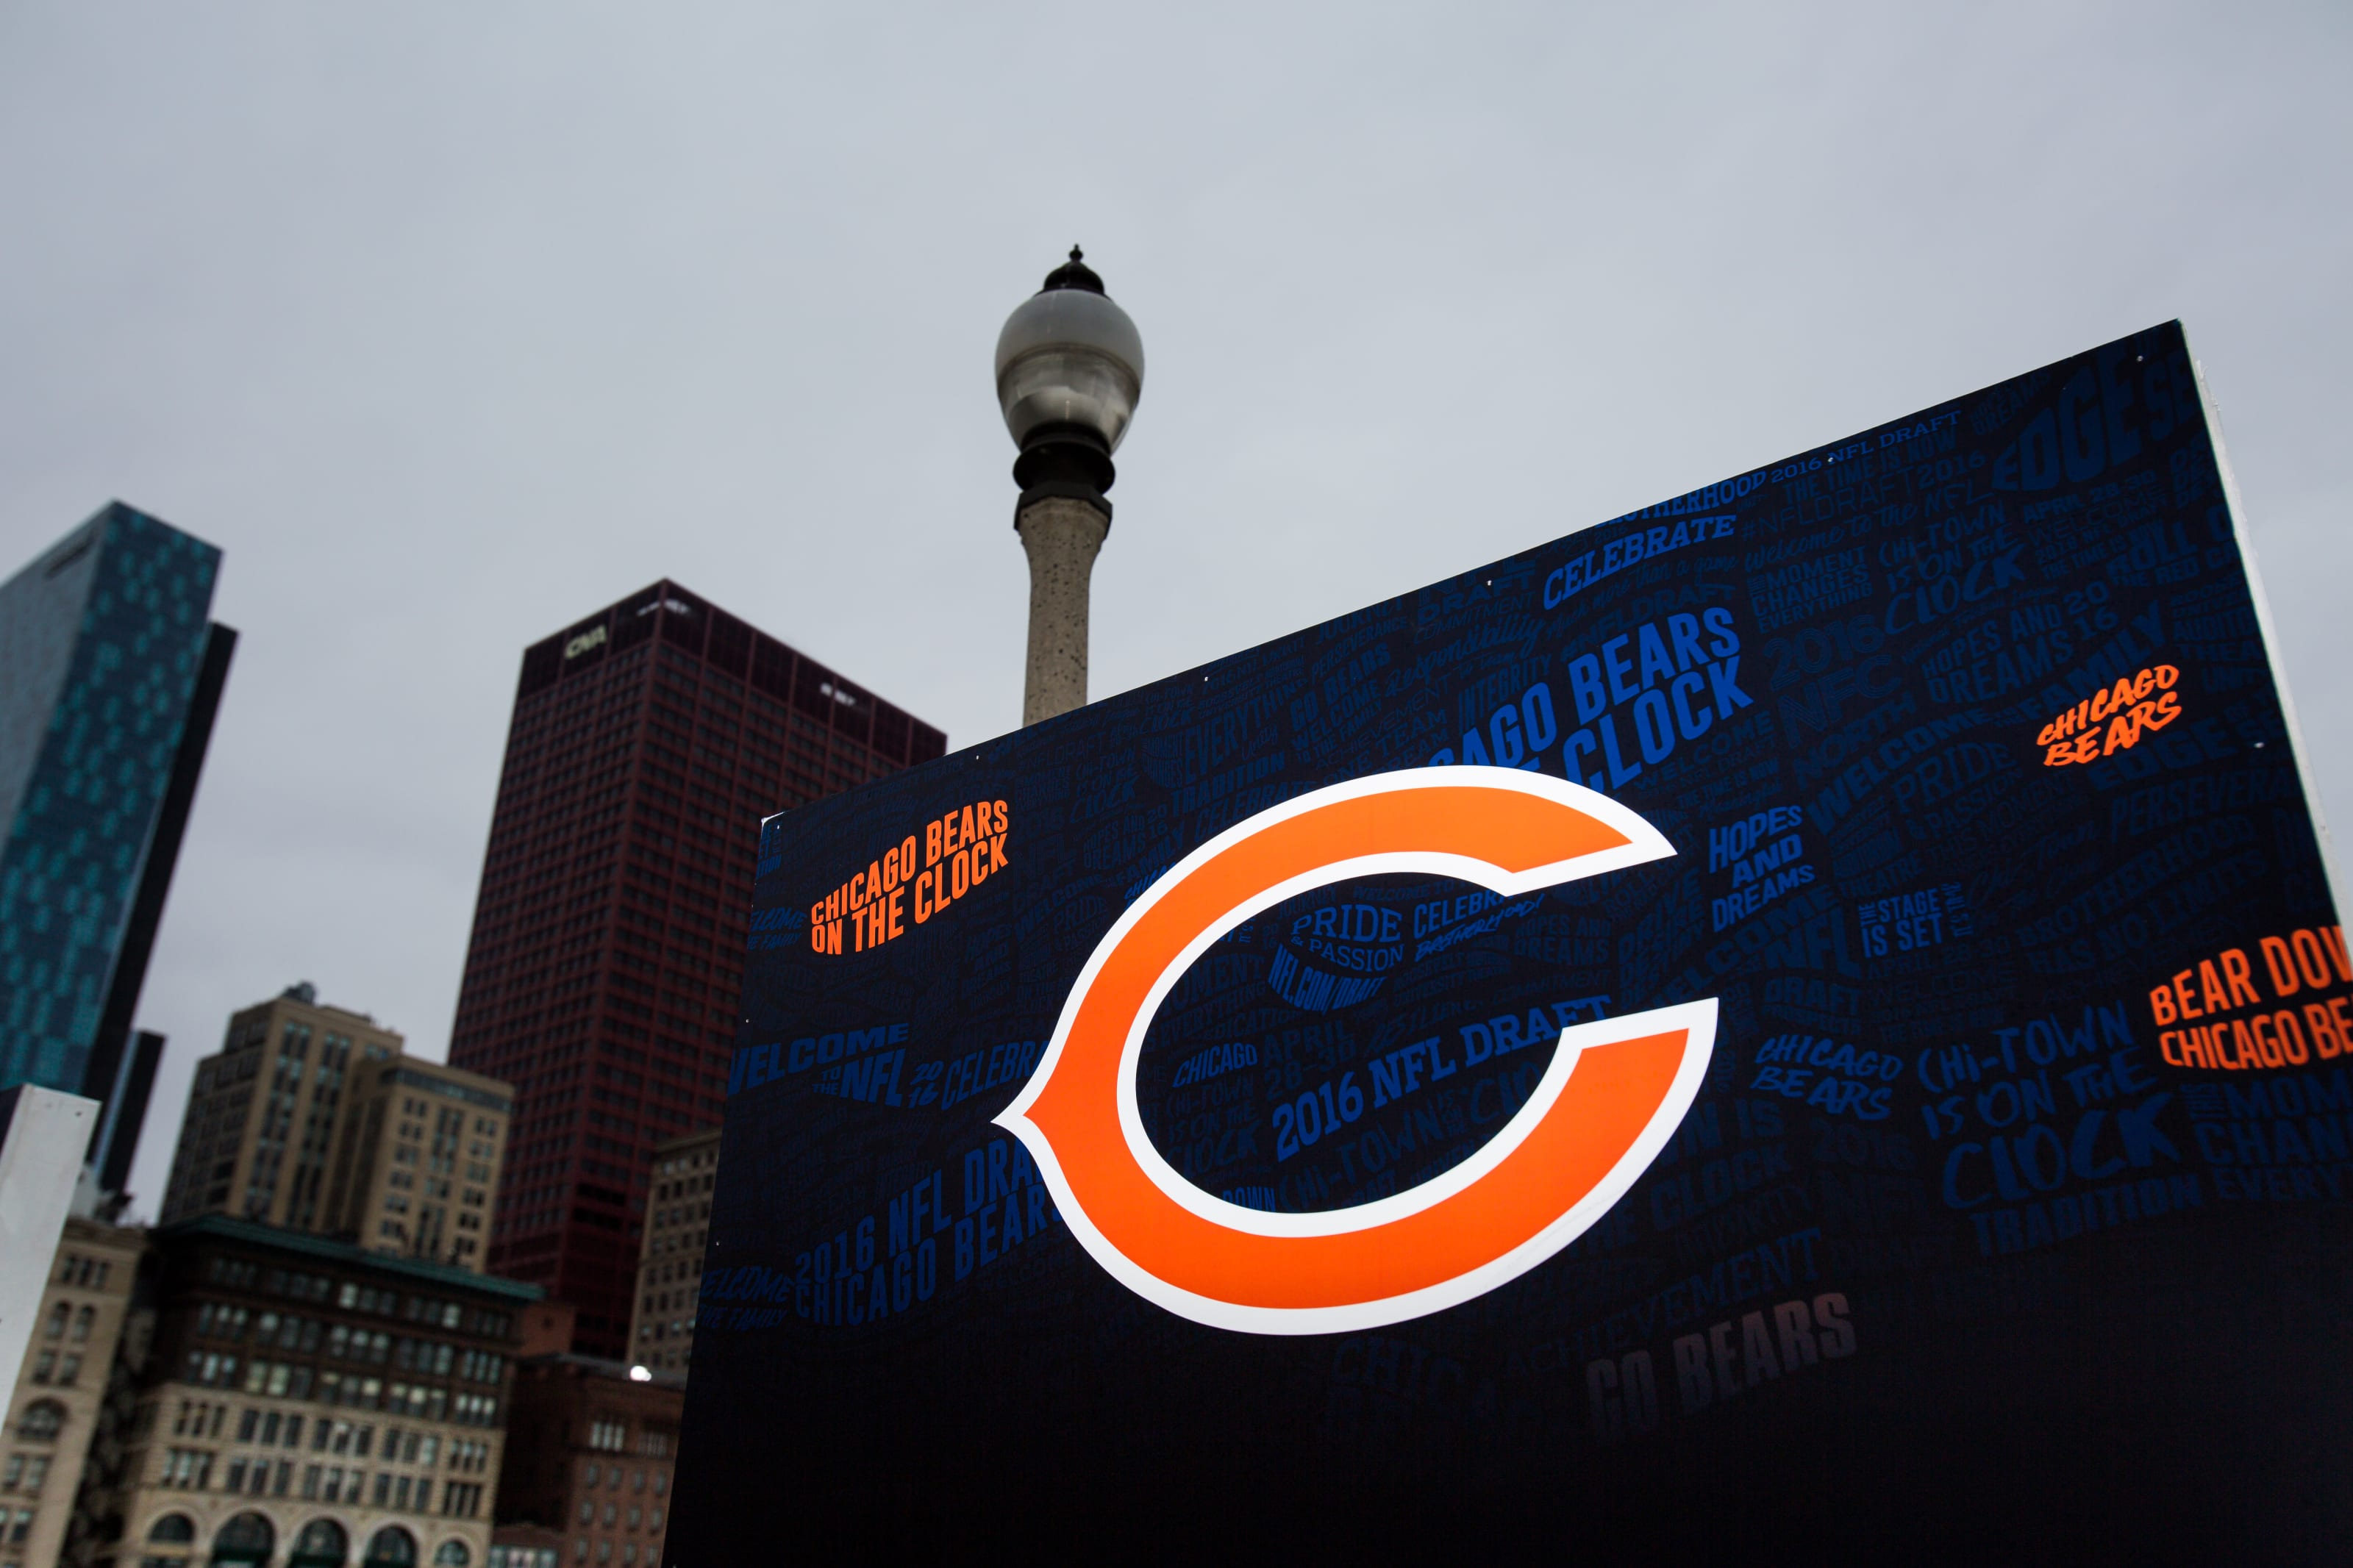 Chicago Bears, NFL Draft